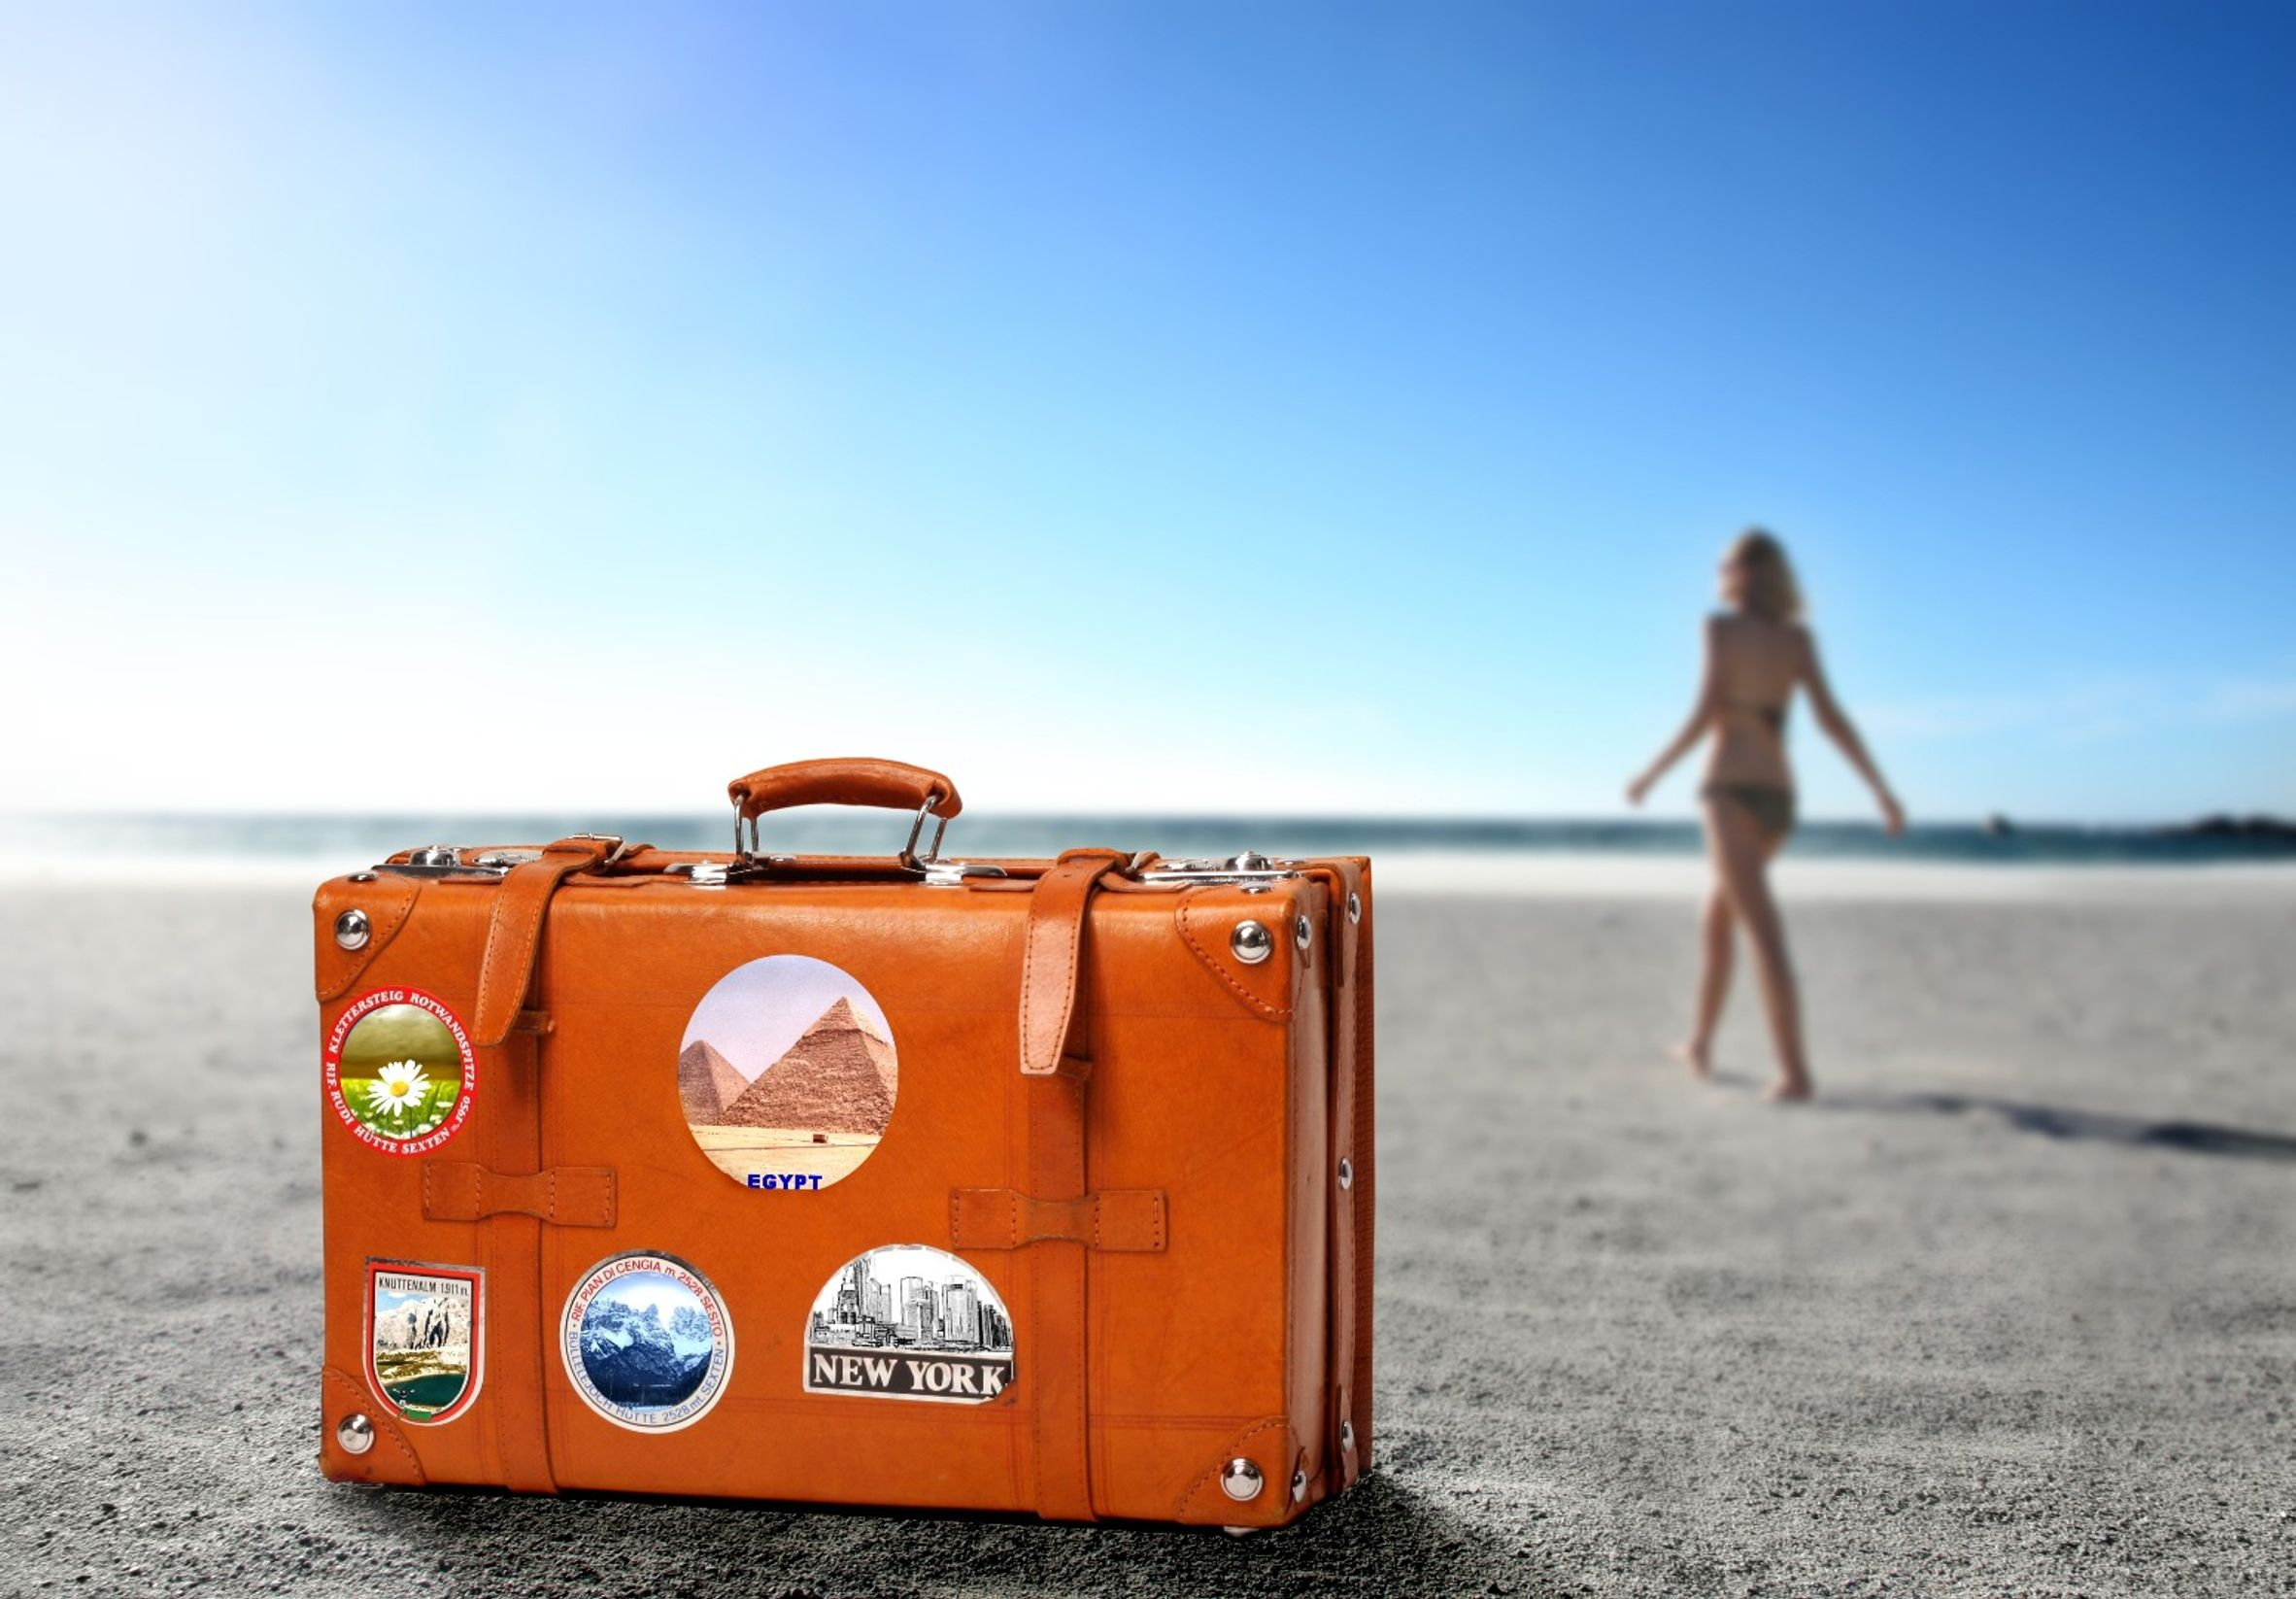 Suitcase with stickers on is sitting on a beach, as a girl is walking towards the sea